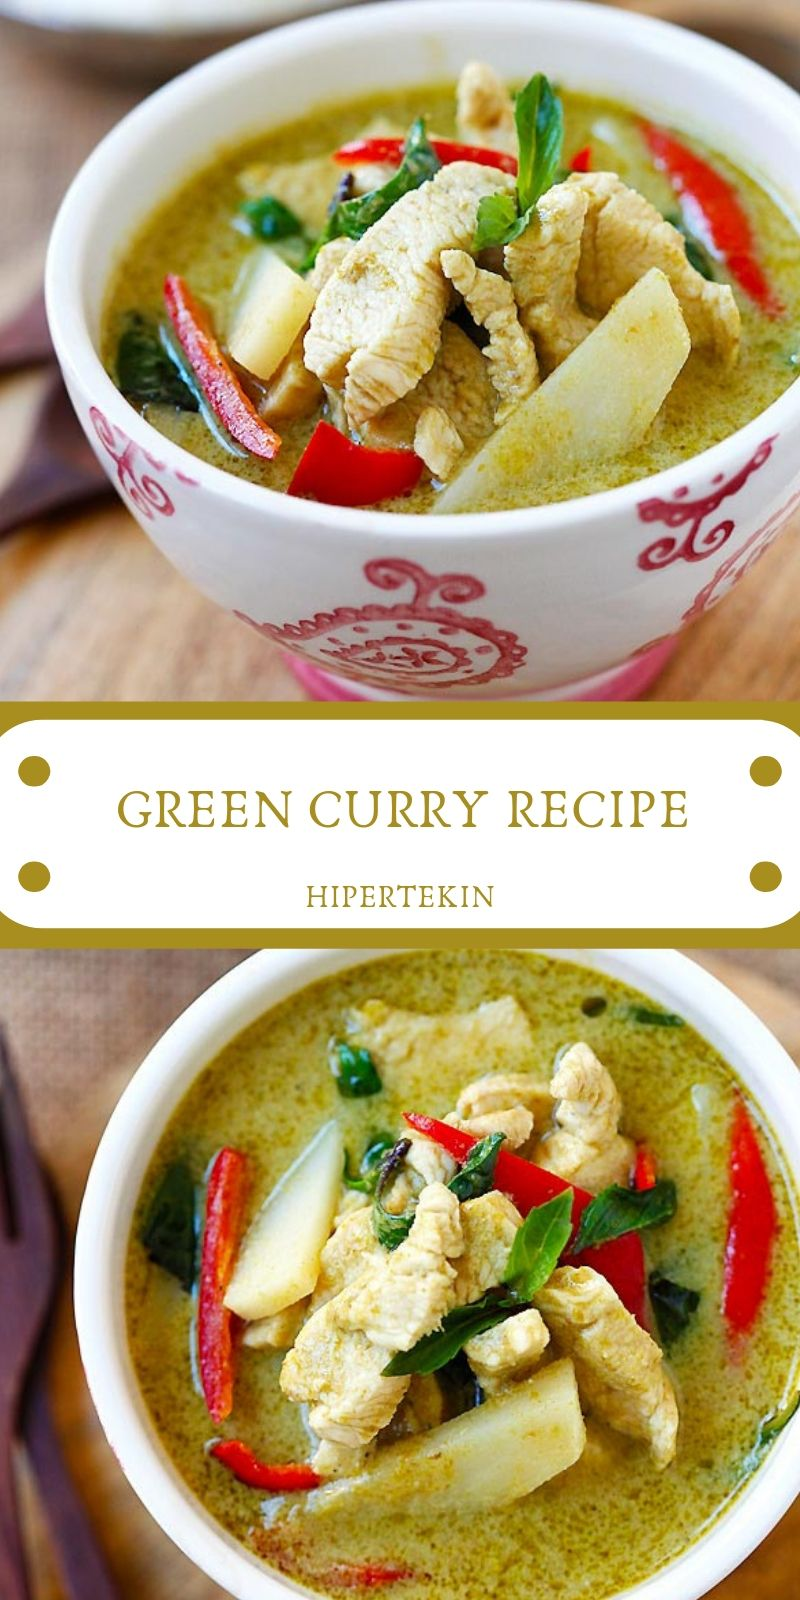 GREEN CURRY RECIPE